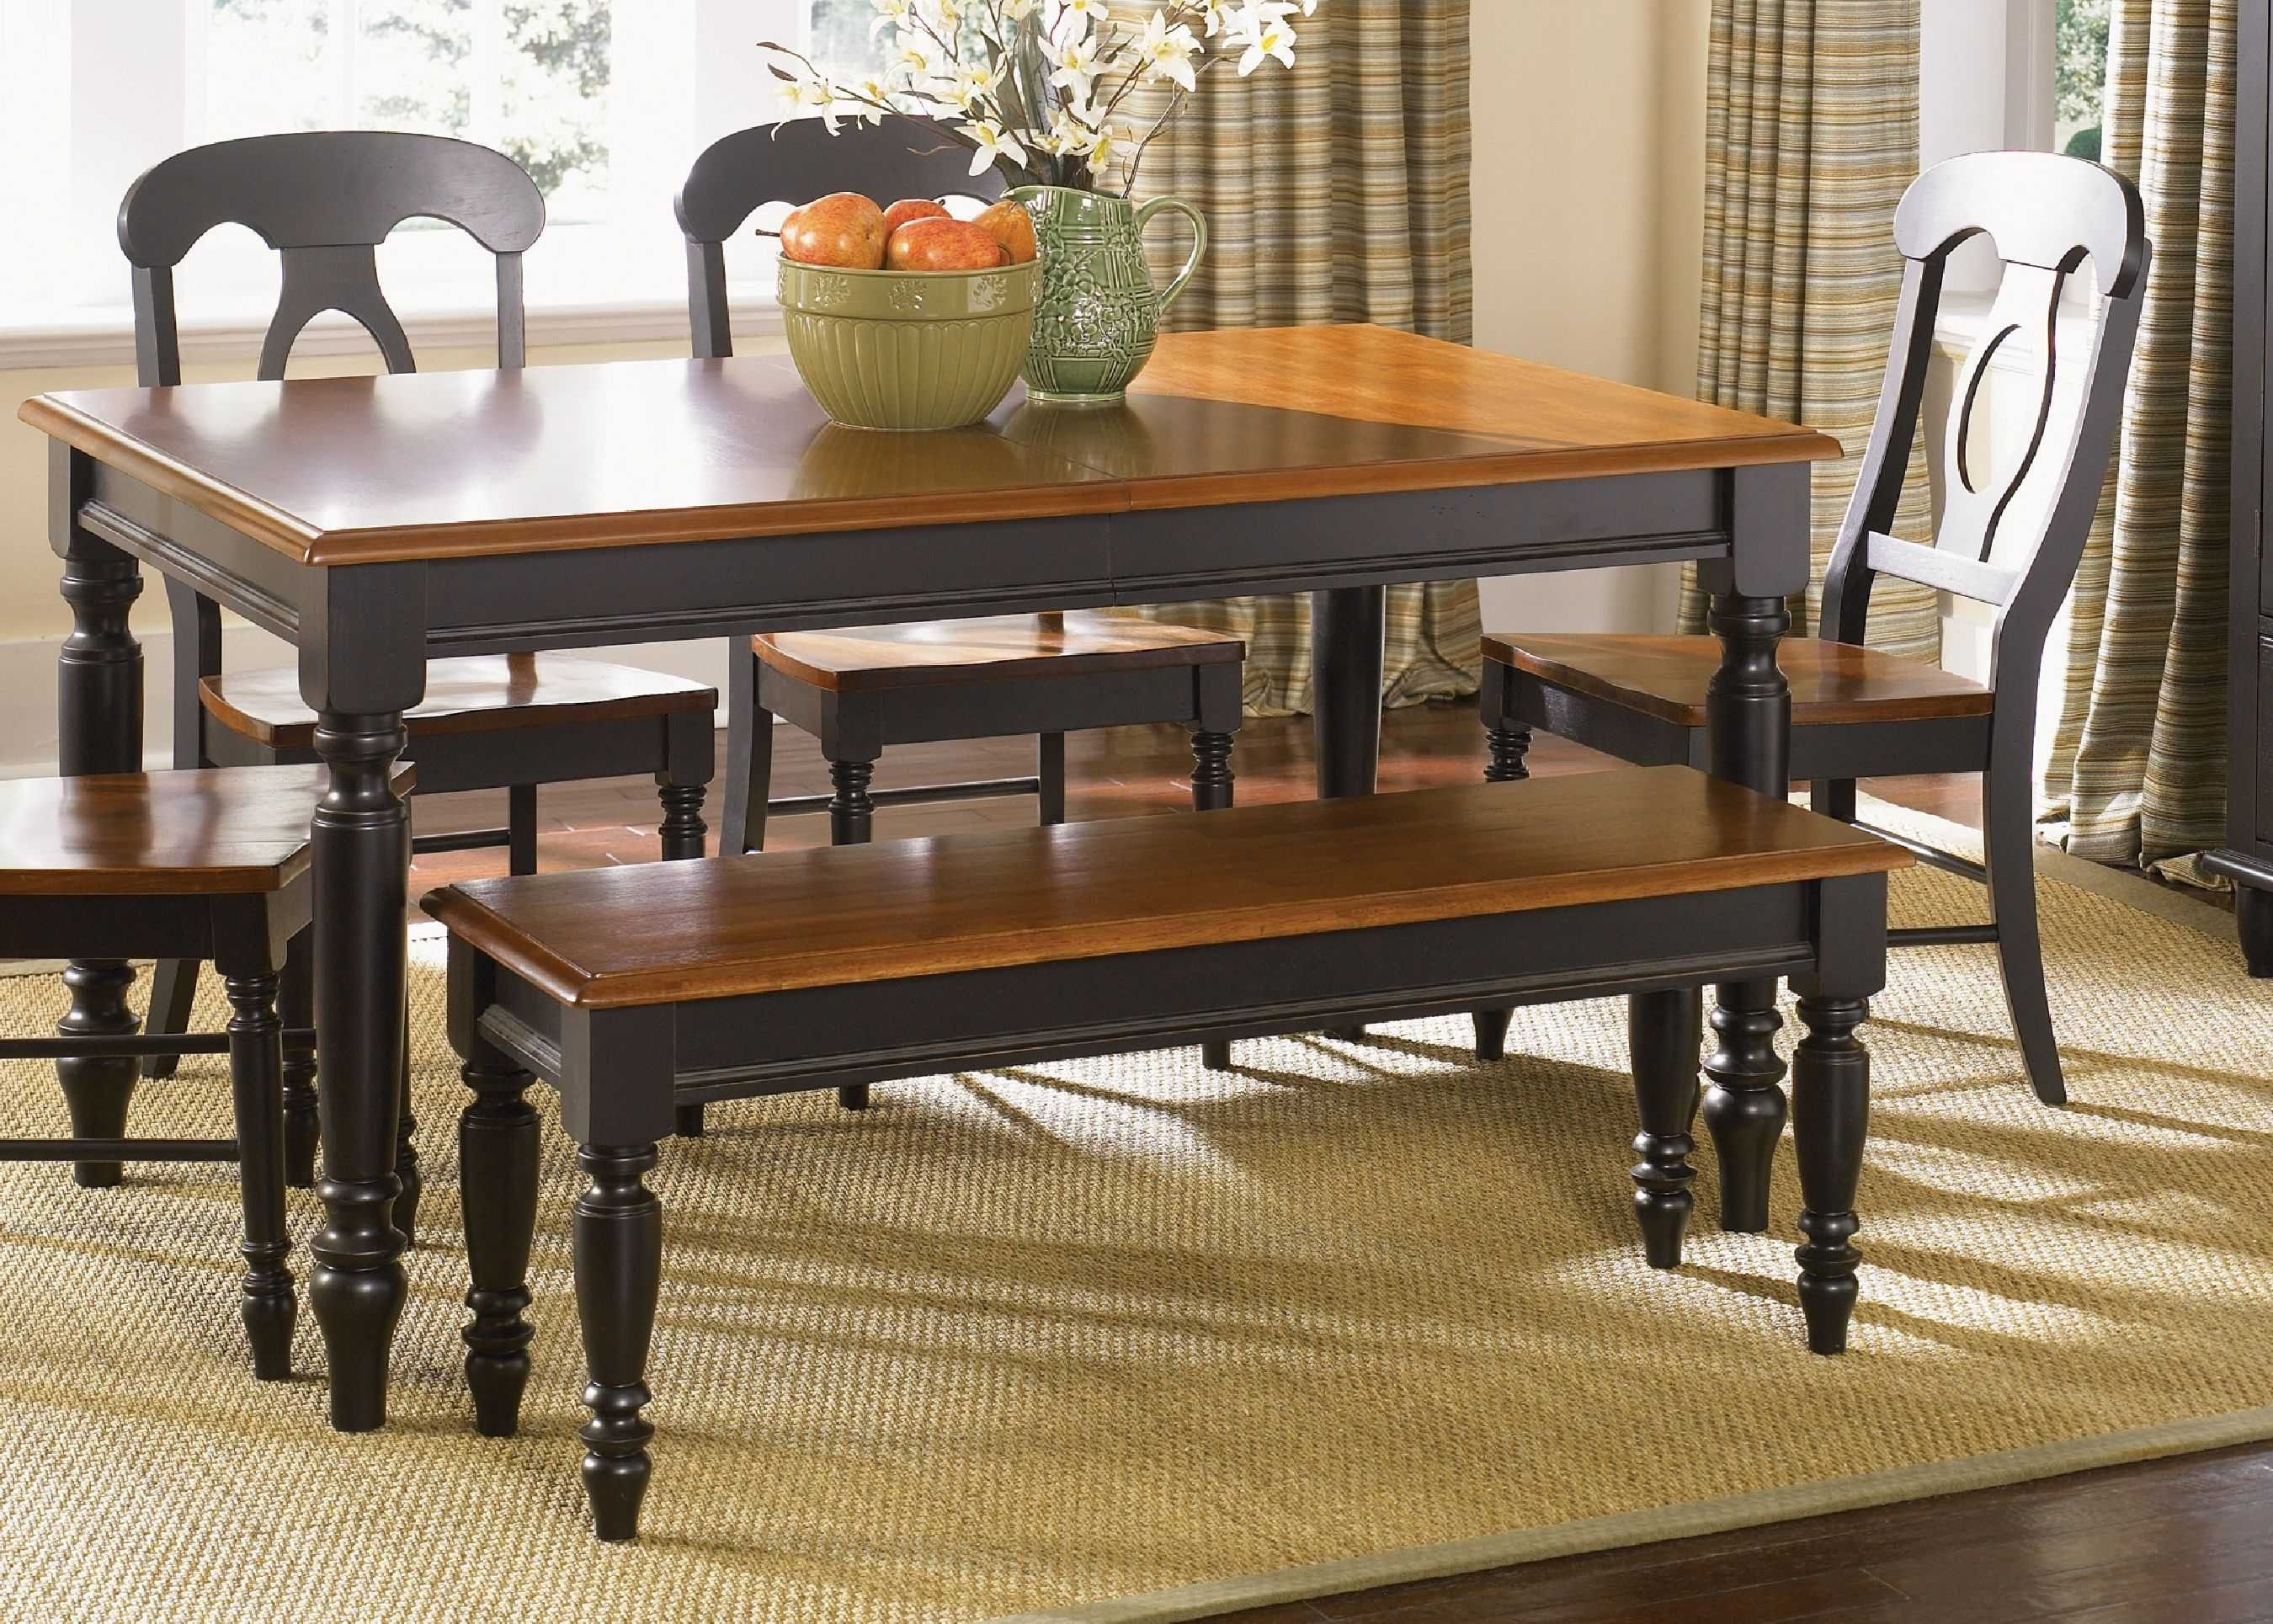 liberty furniture low country black dining bench versatile and stylish the liberty furniture low country black dining bench means you always have an - Low Dining Room Table